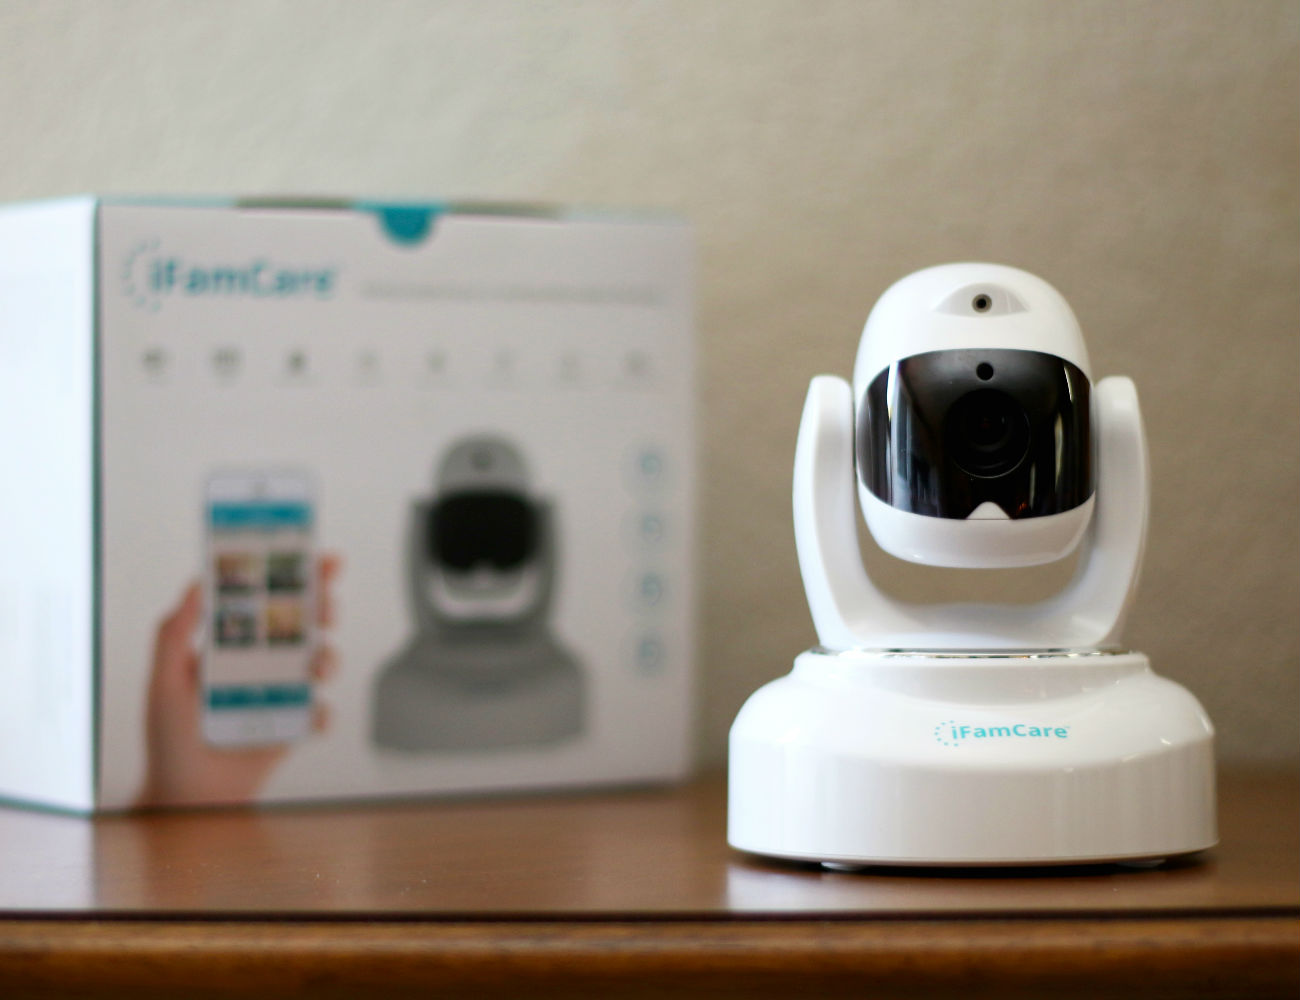 Helmet+%E2%80%93+The+Smart+Home+Video+Monitor+By+IFamCare